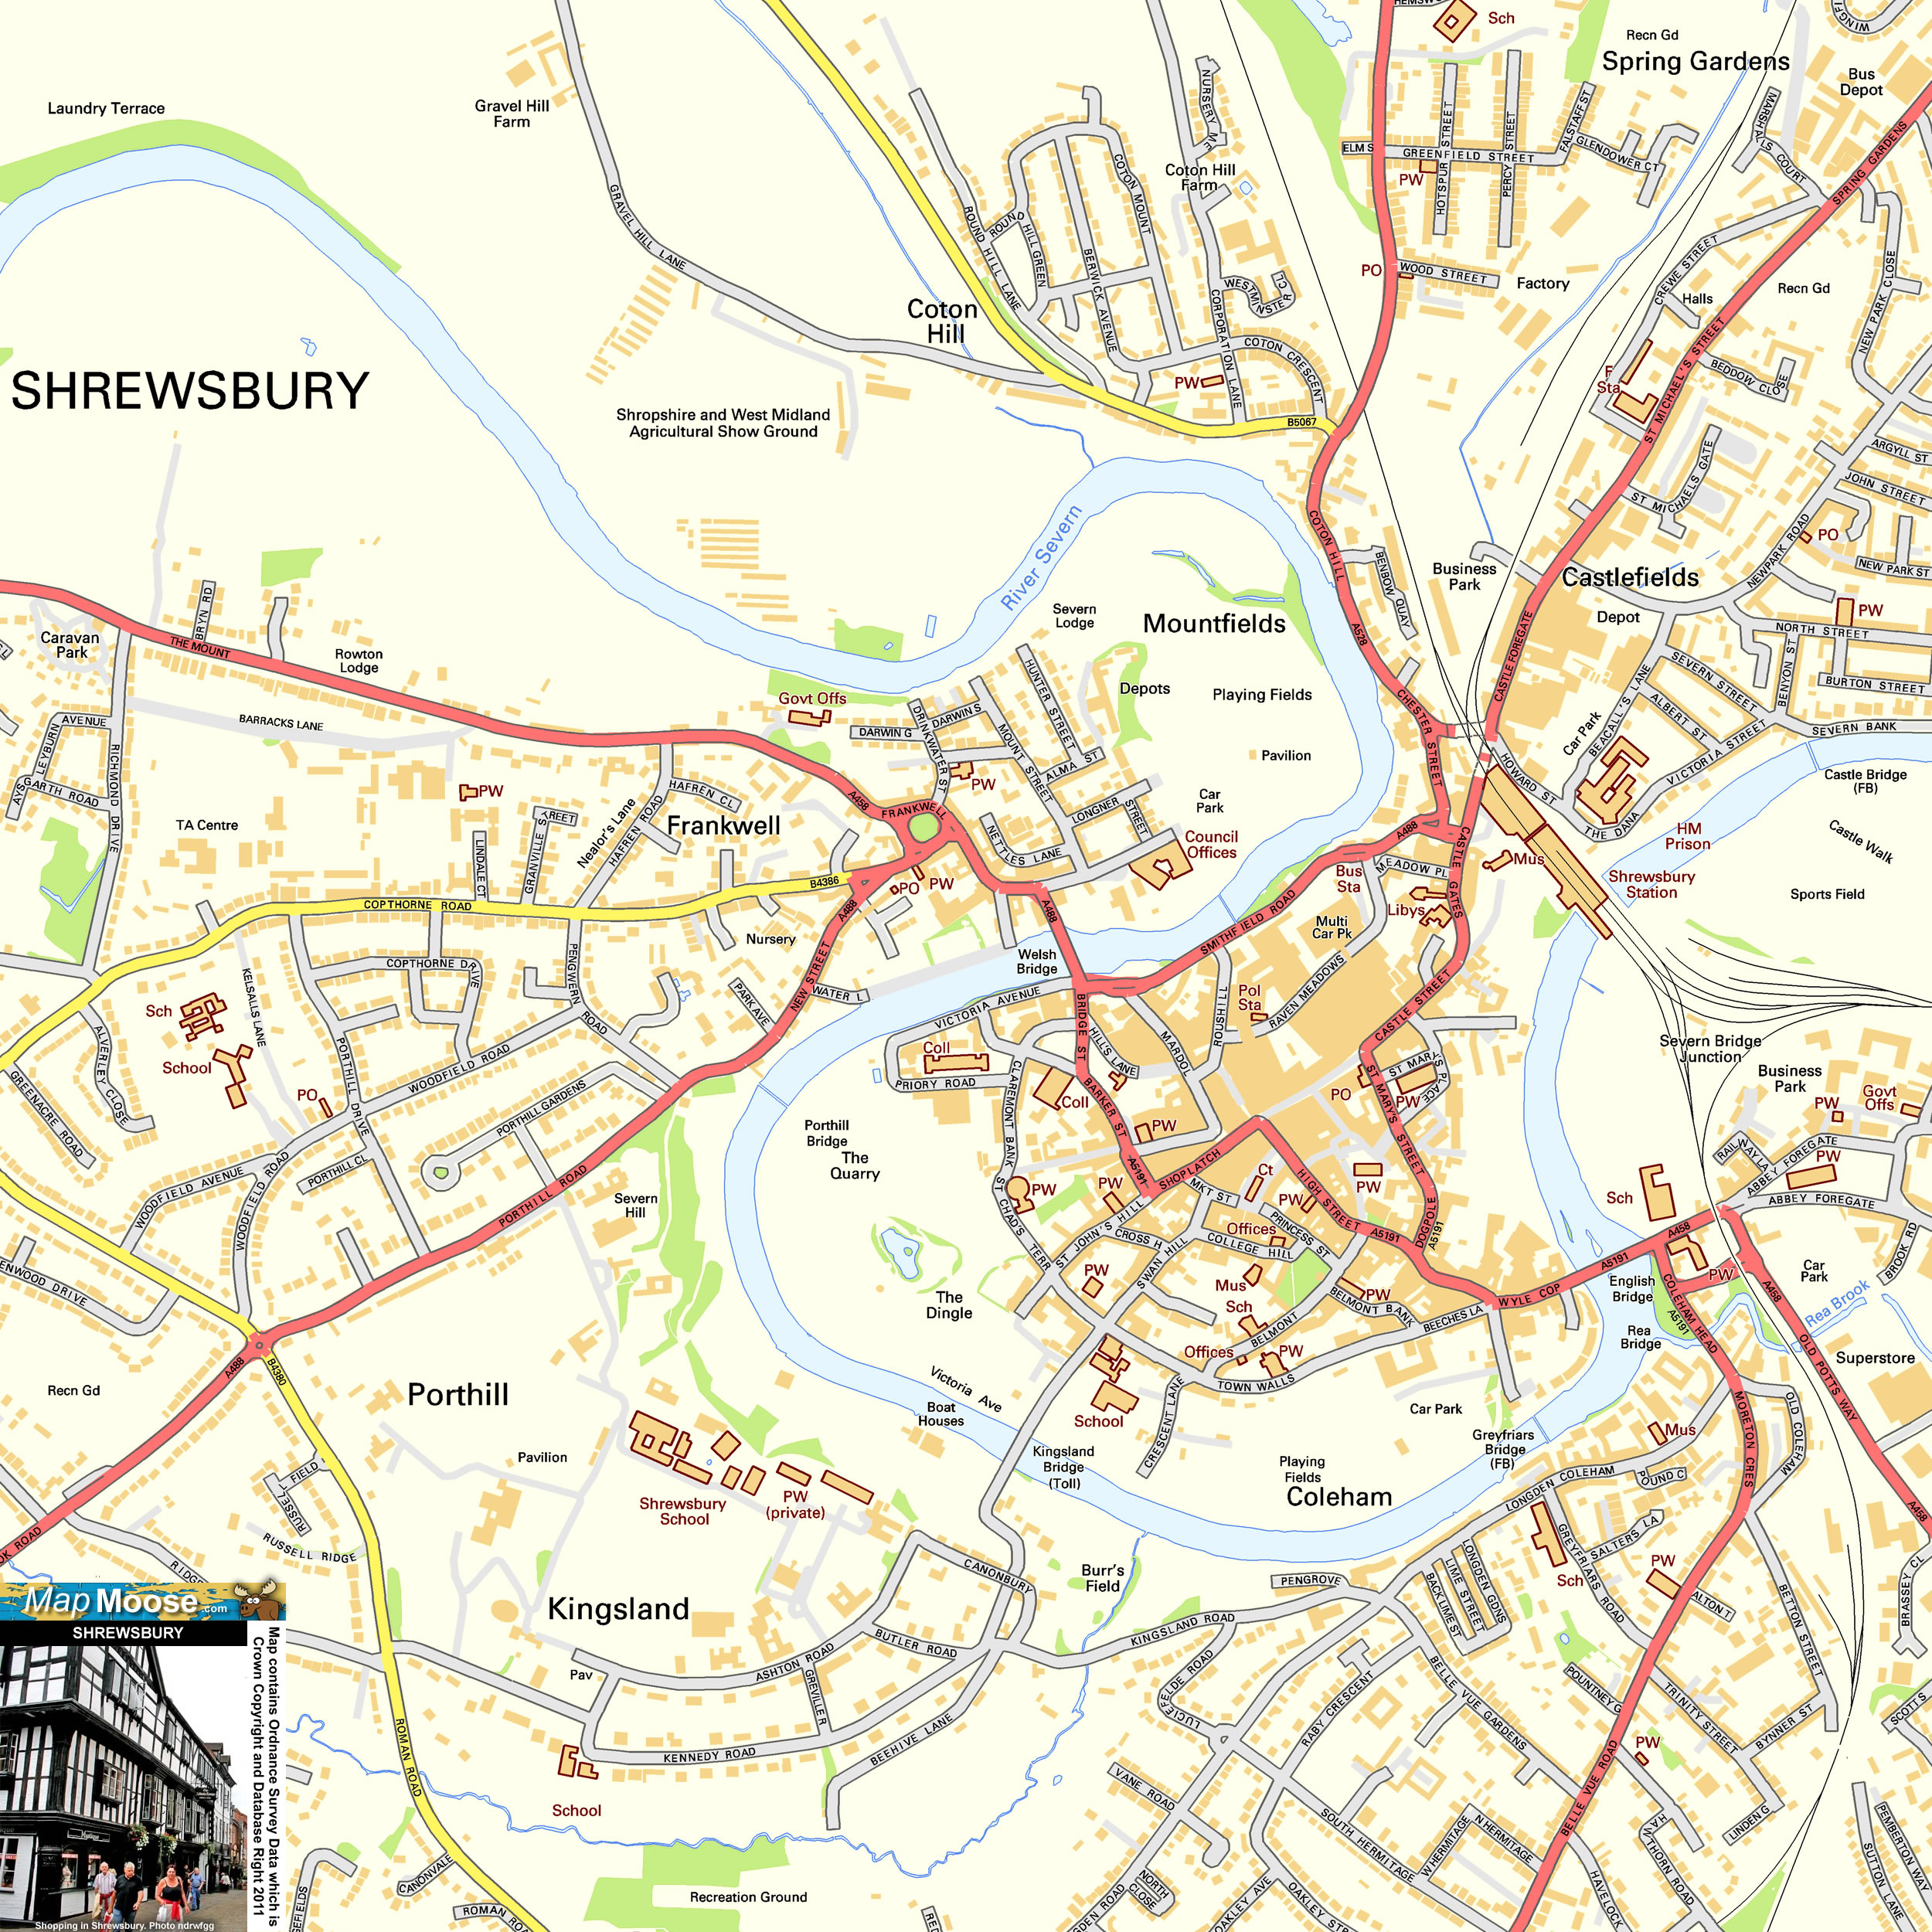 Shrewsbury Offline Street Map including River Severn Castlefields